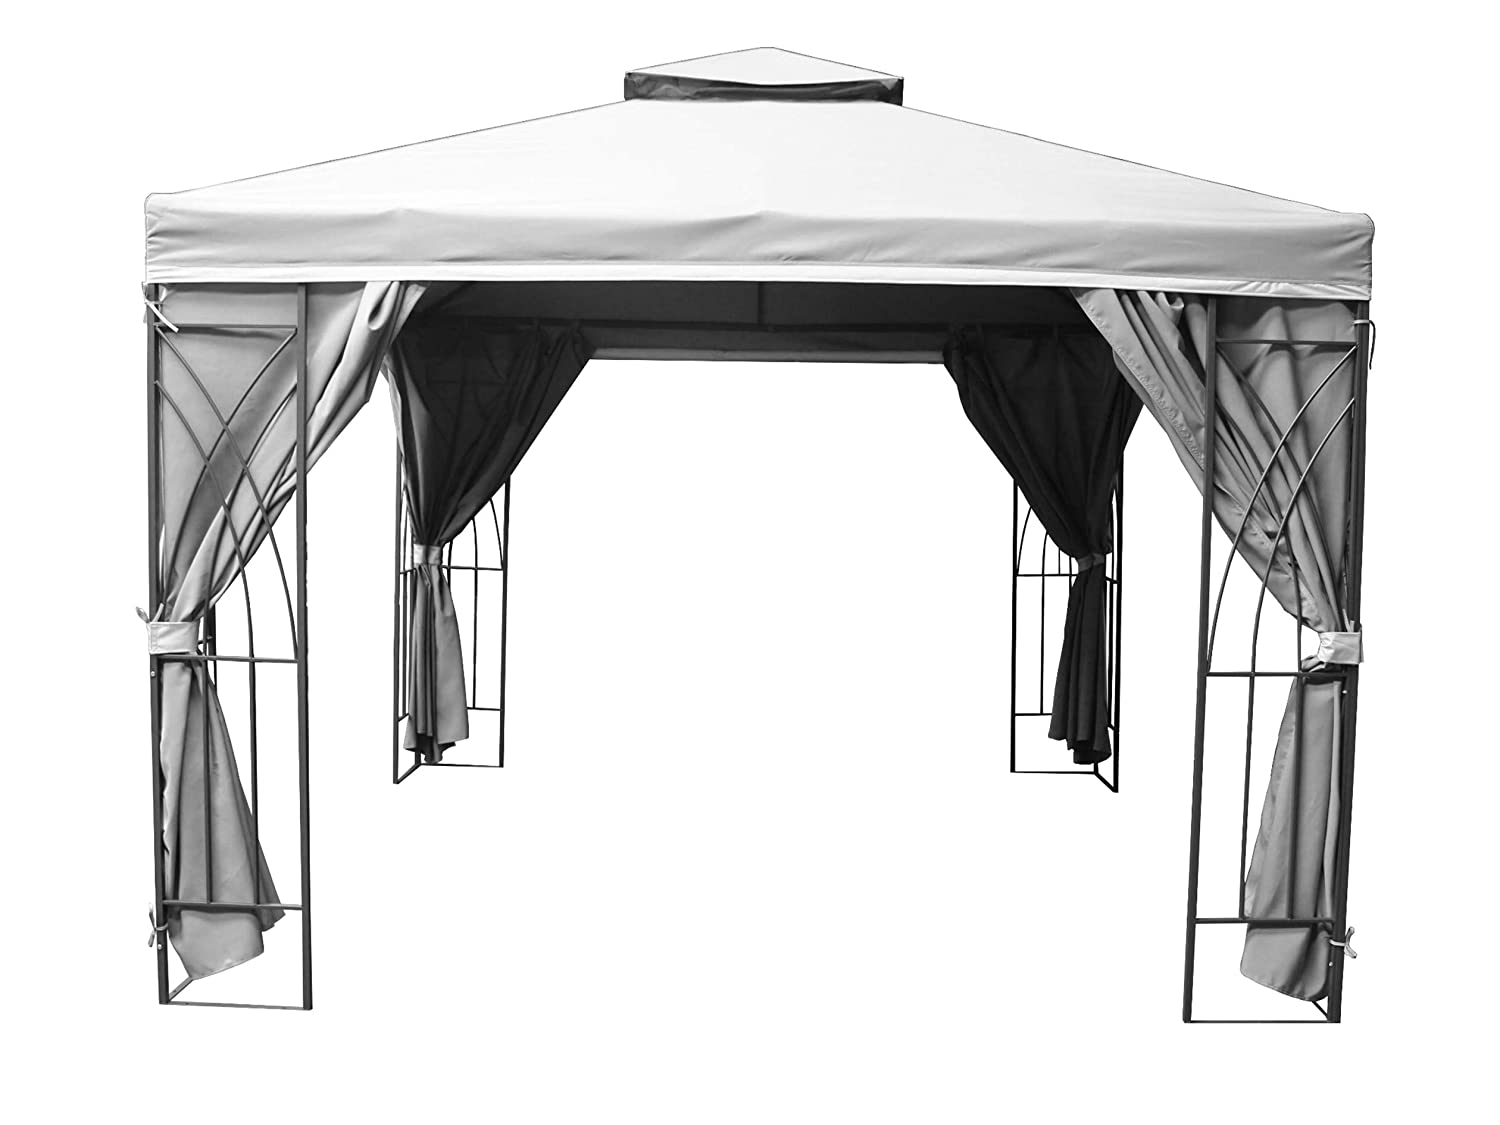 MASTERS OUTDOOR LEISURE LTD Gazebo Buckingham - Toldo Impermeable ...